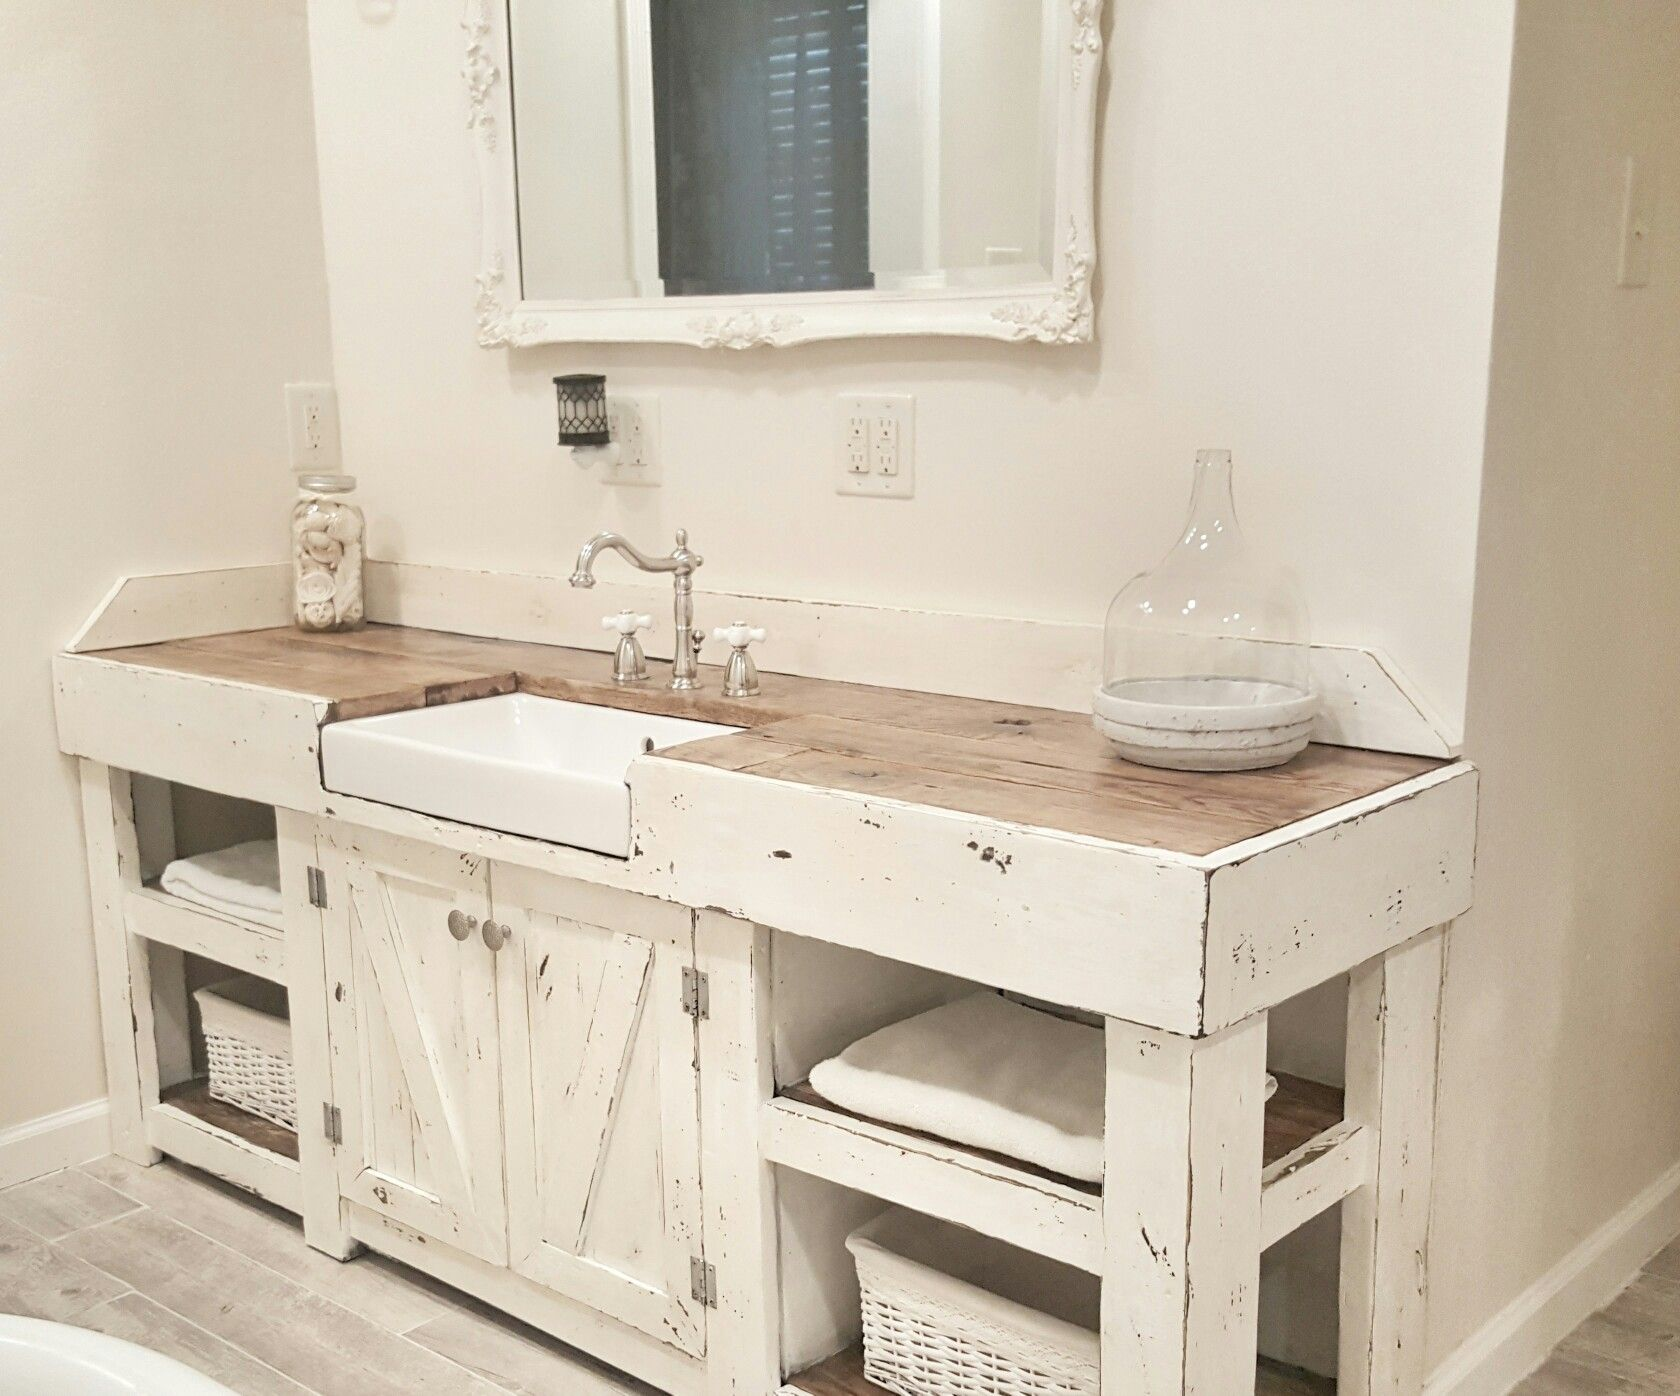 Cottage bathroom farmhouse bathroom farmhouse vanity for Bathroom vanity sink ideas